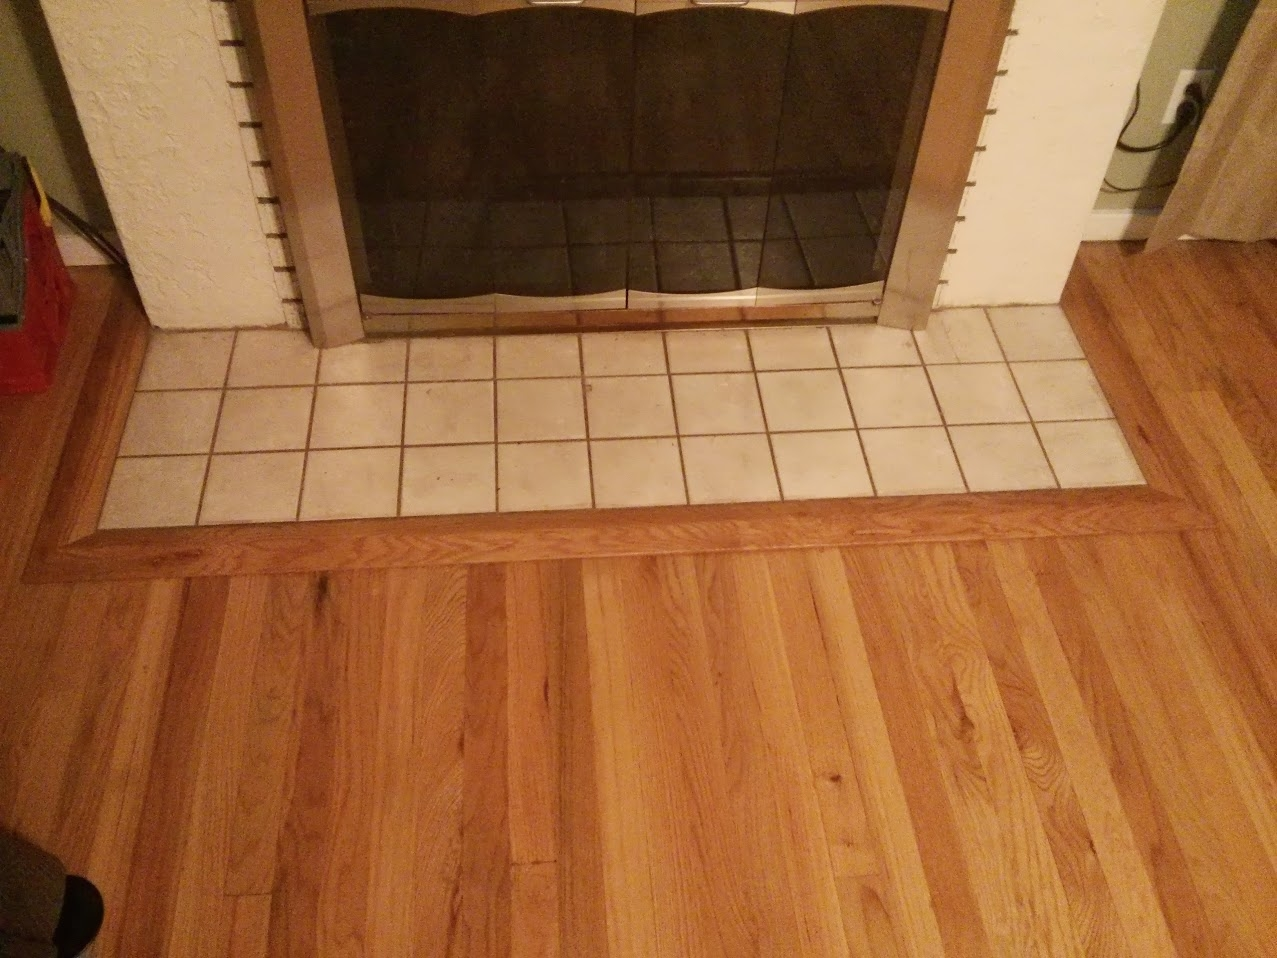 Wood Flooring Threshold Transition